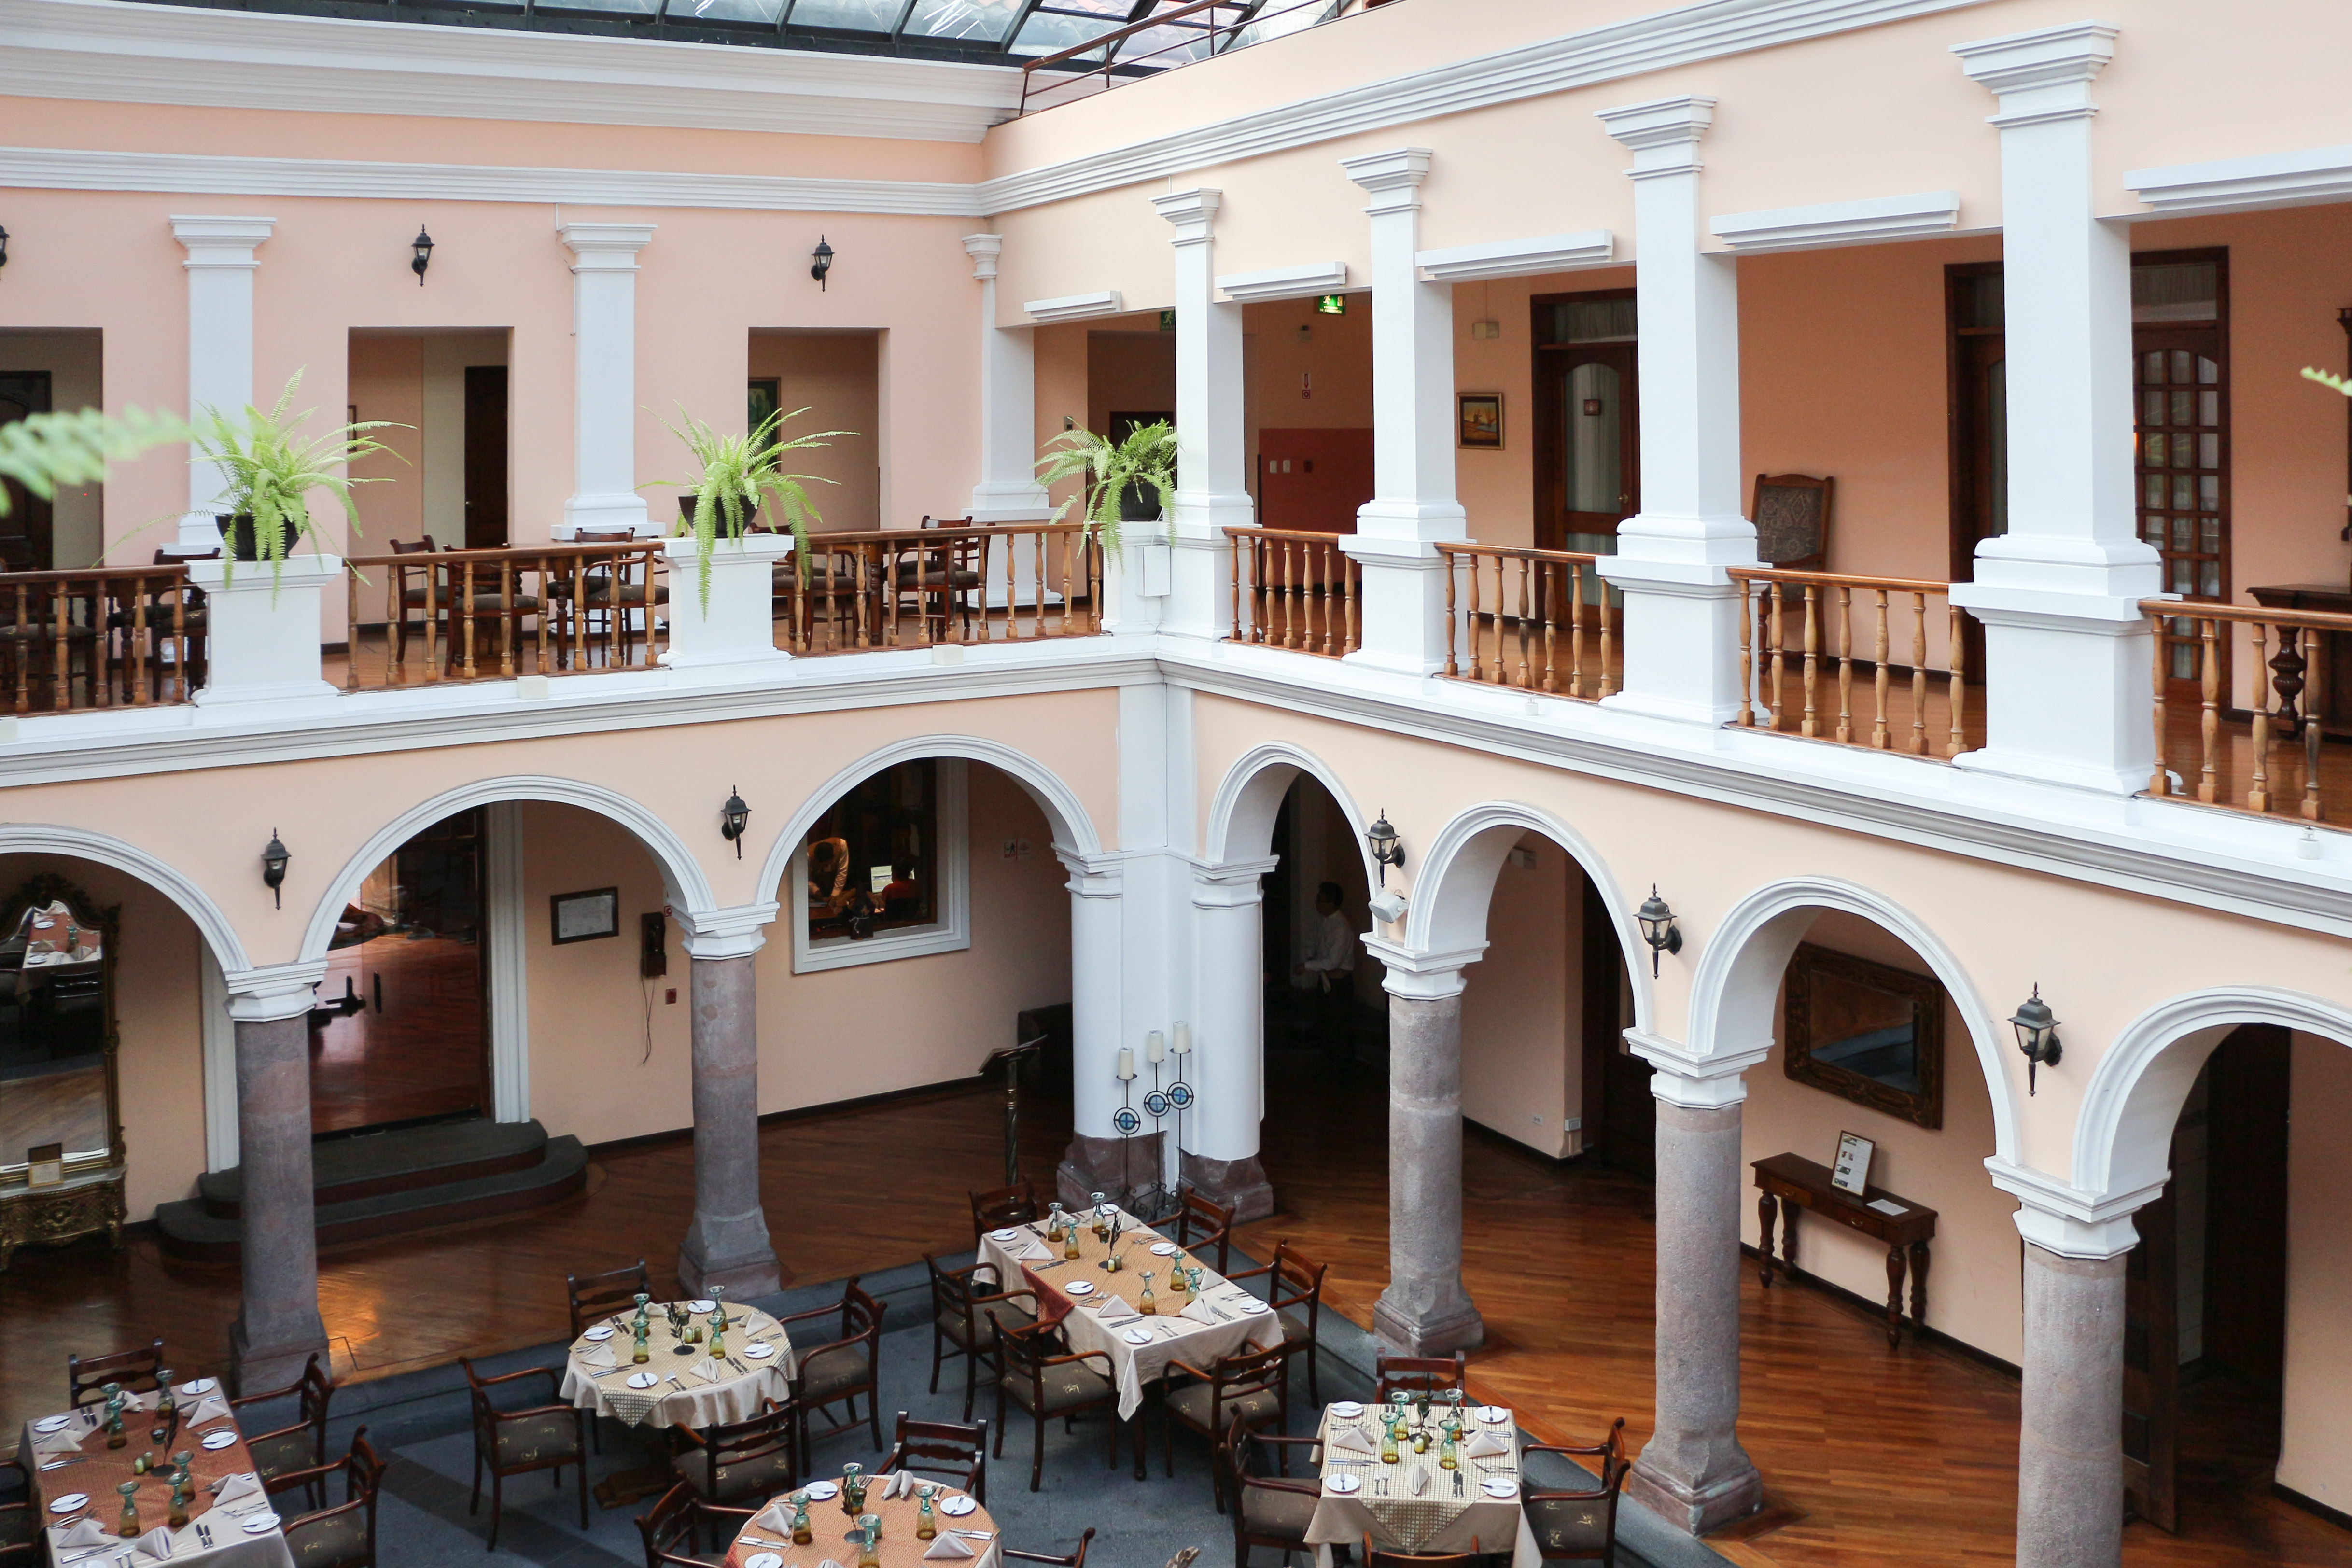 File:Hotel Patio Andaluz, Quito 01